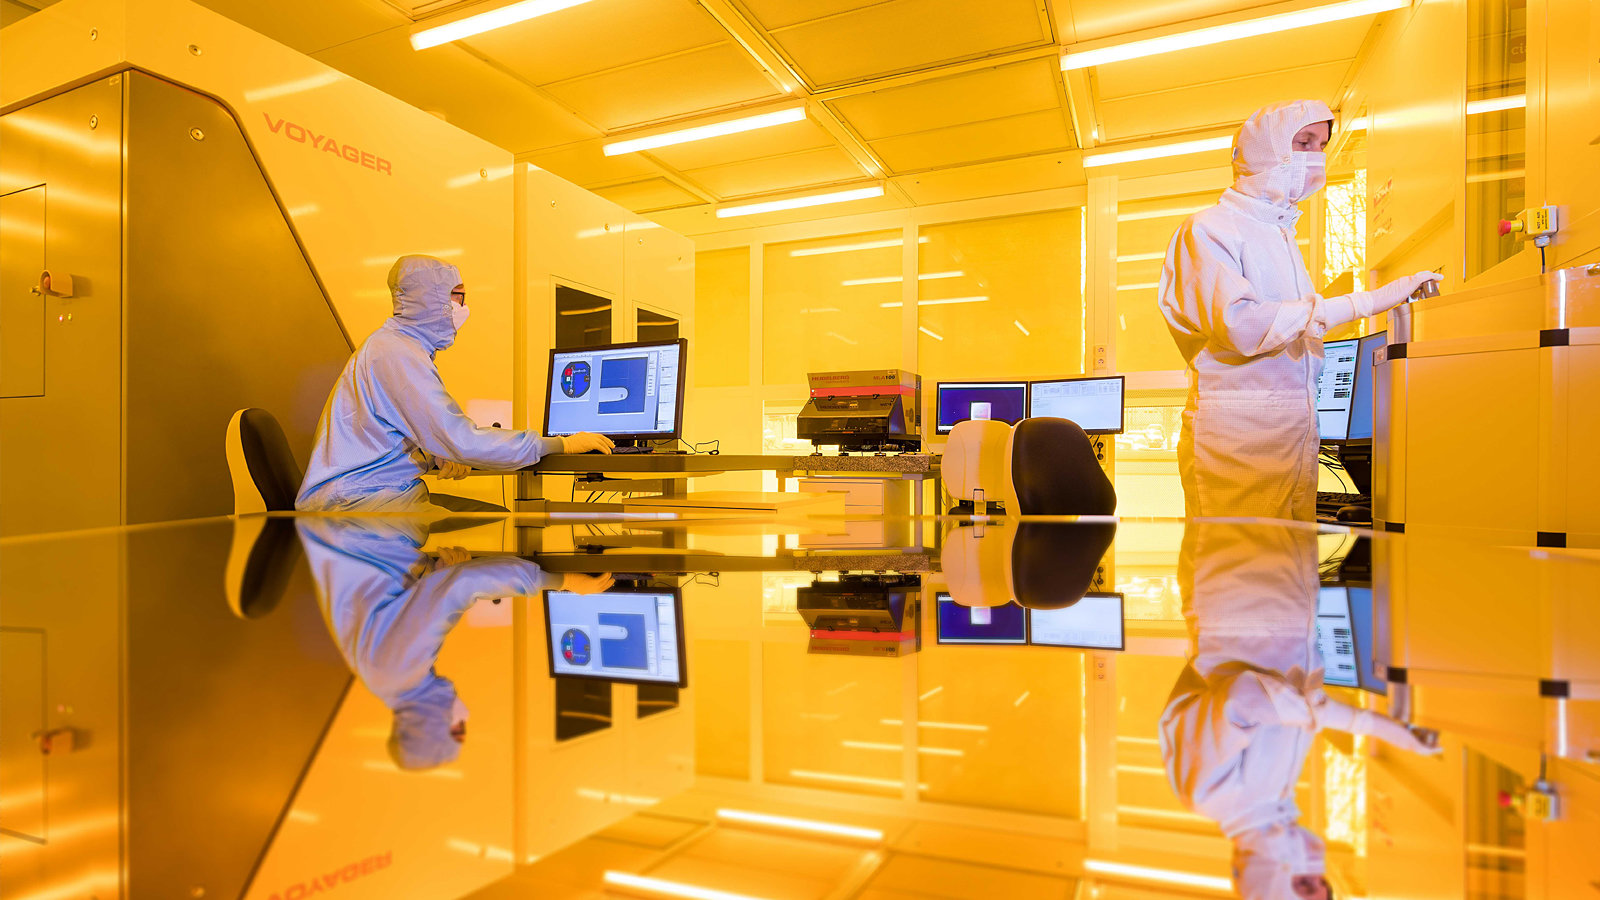 Two men in protective suits work in a lab.